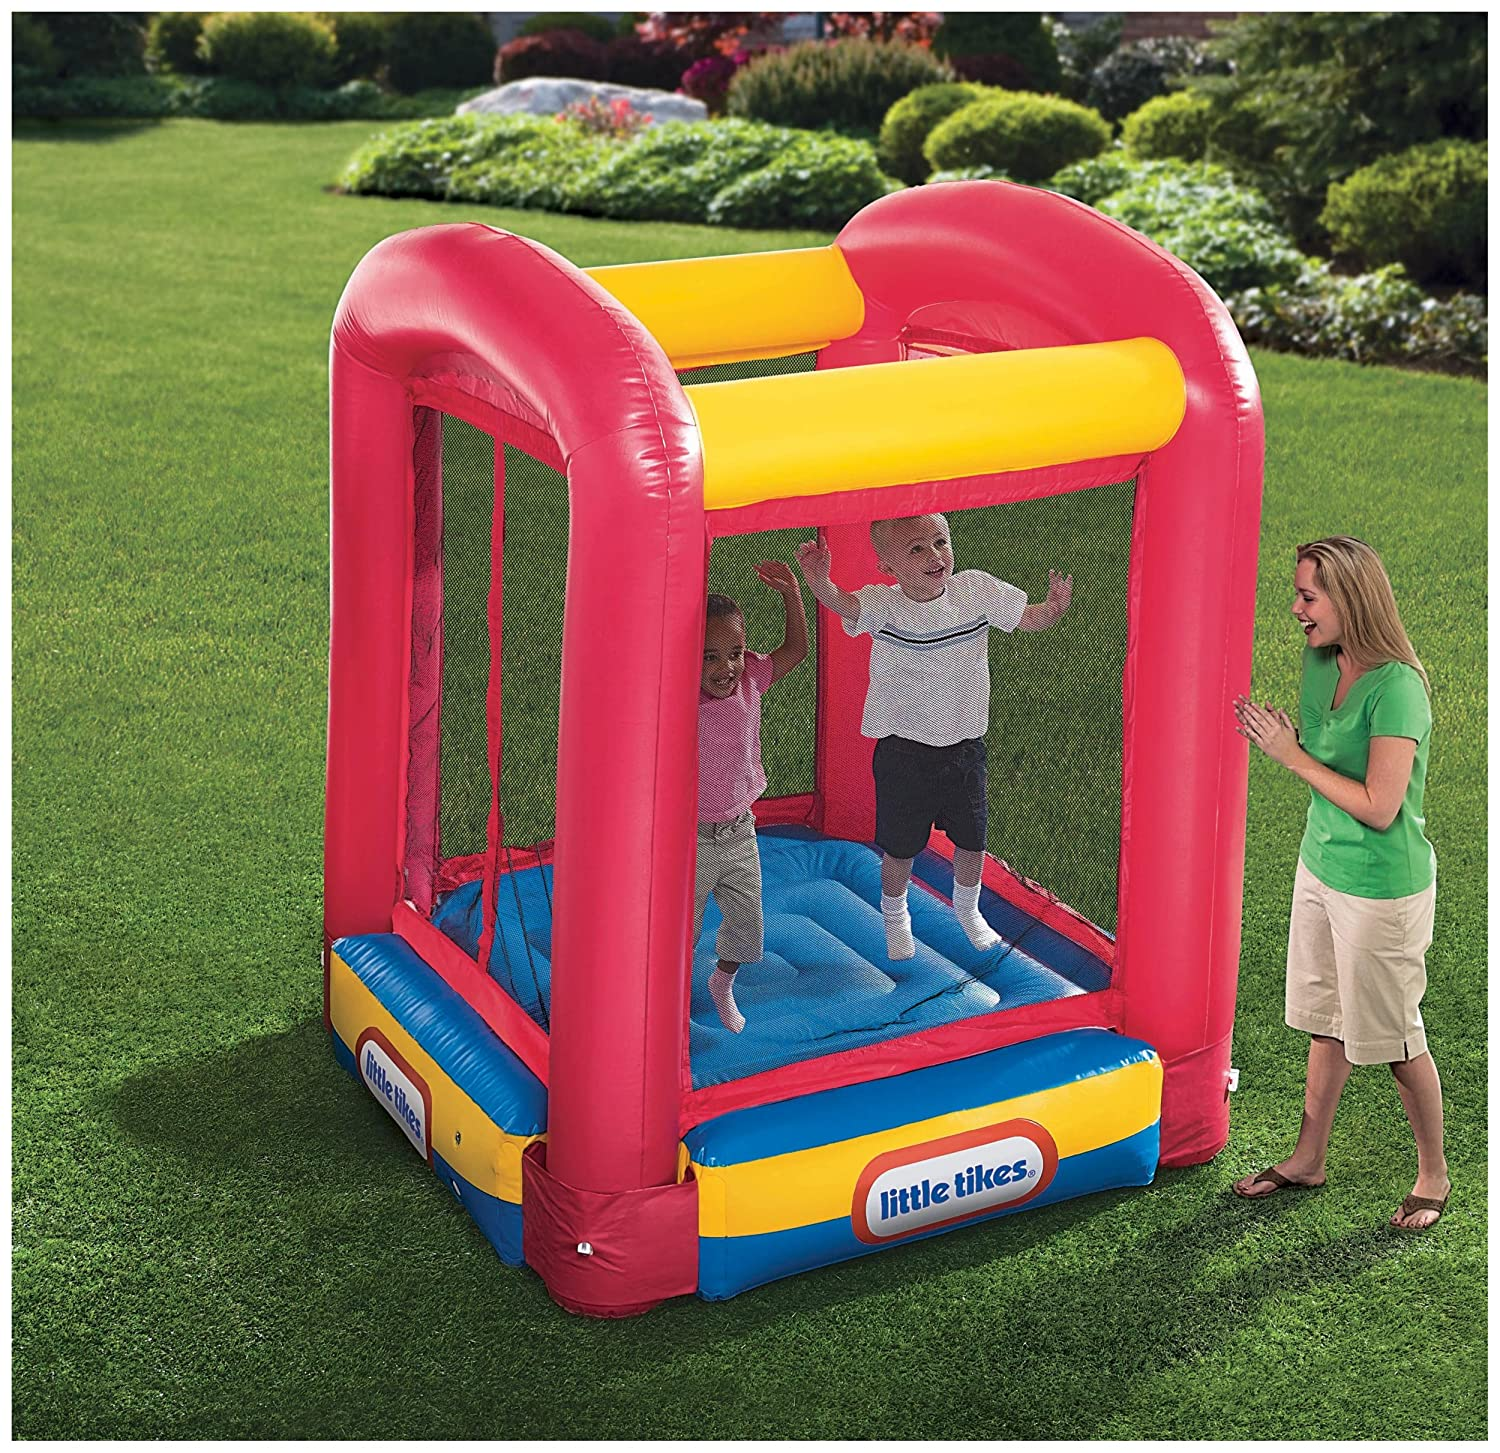 Amazon Little Tikes Bounce House Trampoline Toys Games